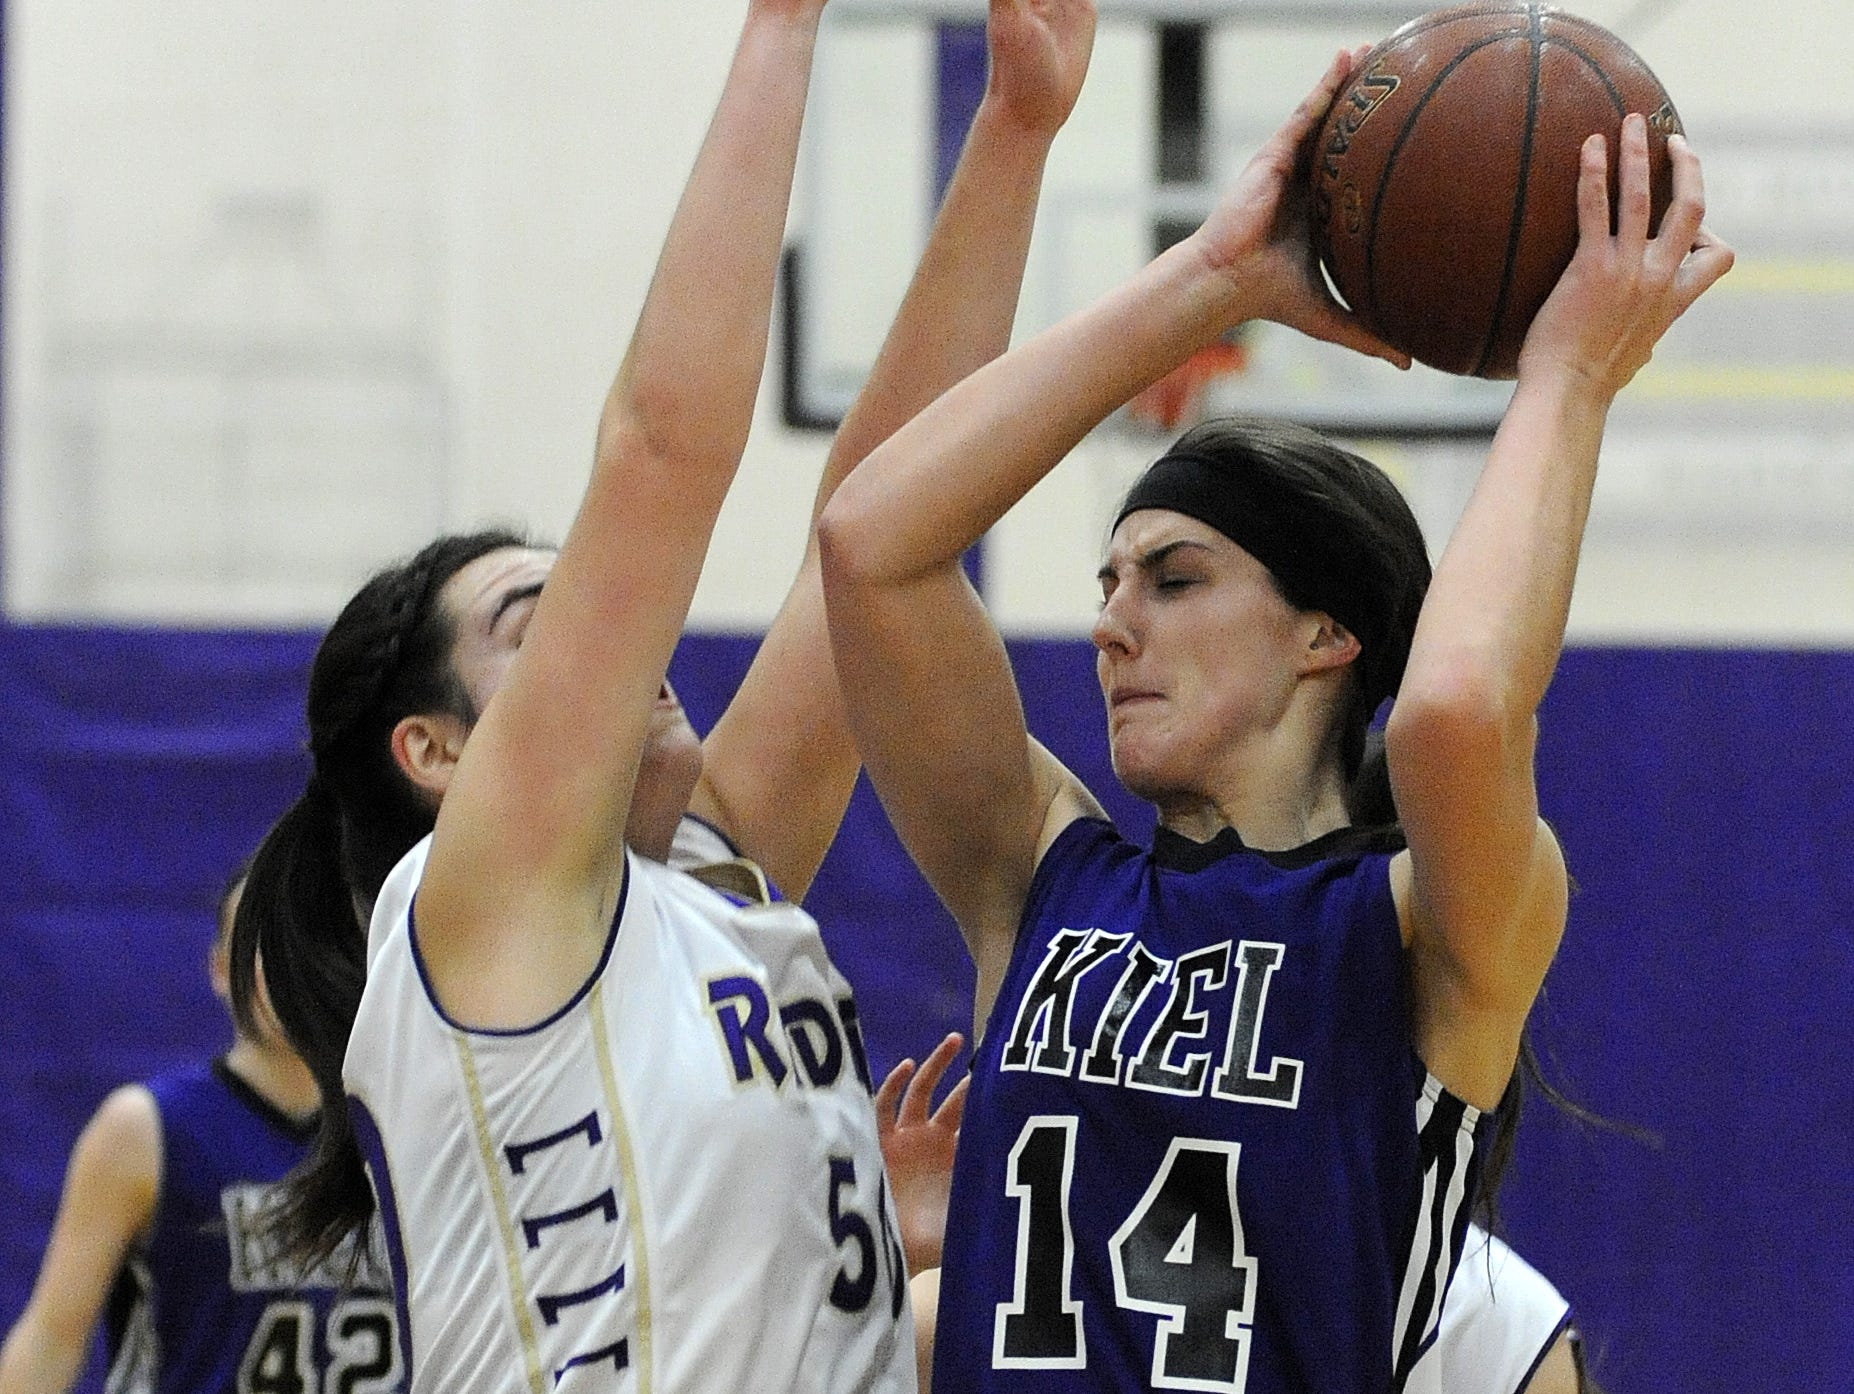 Senior Cassie Schweitzer will be one of a talented group of frontcourt players for the Raiders this season.